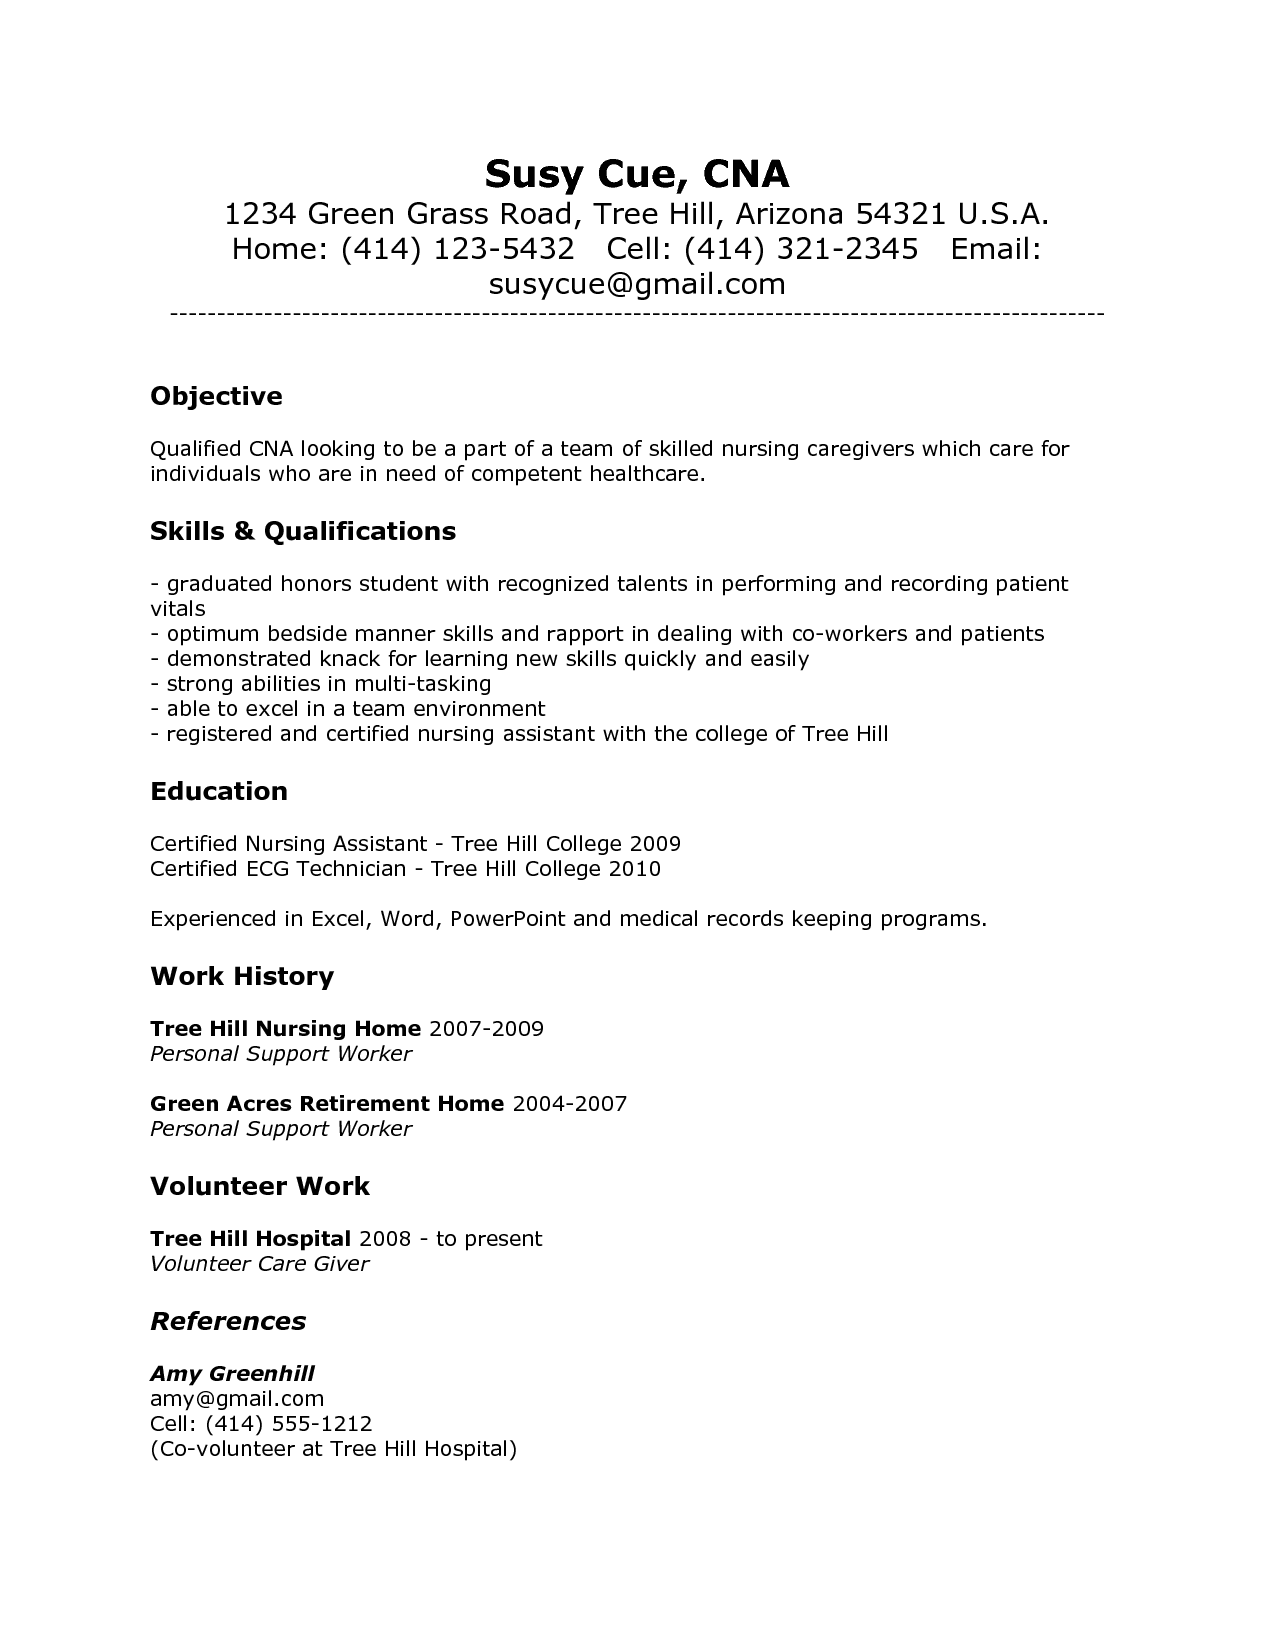 Cna Resume Objective Examples : resume, objective, examples